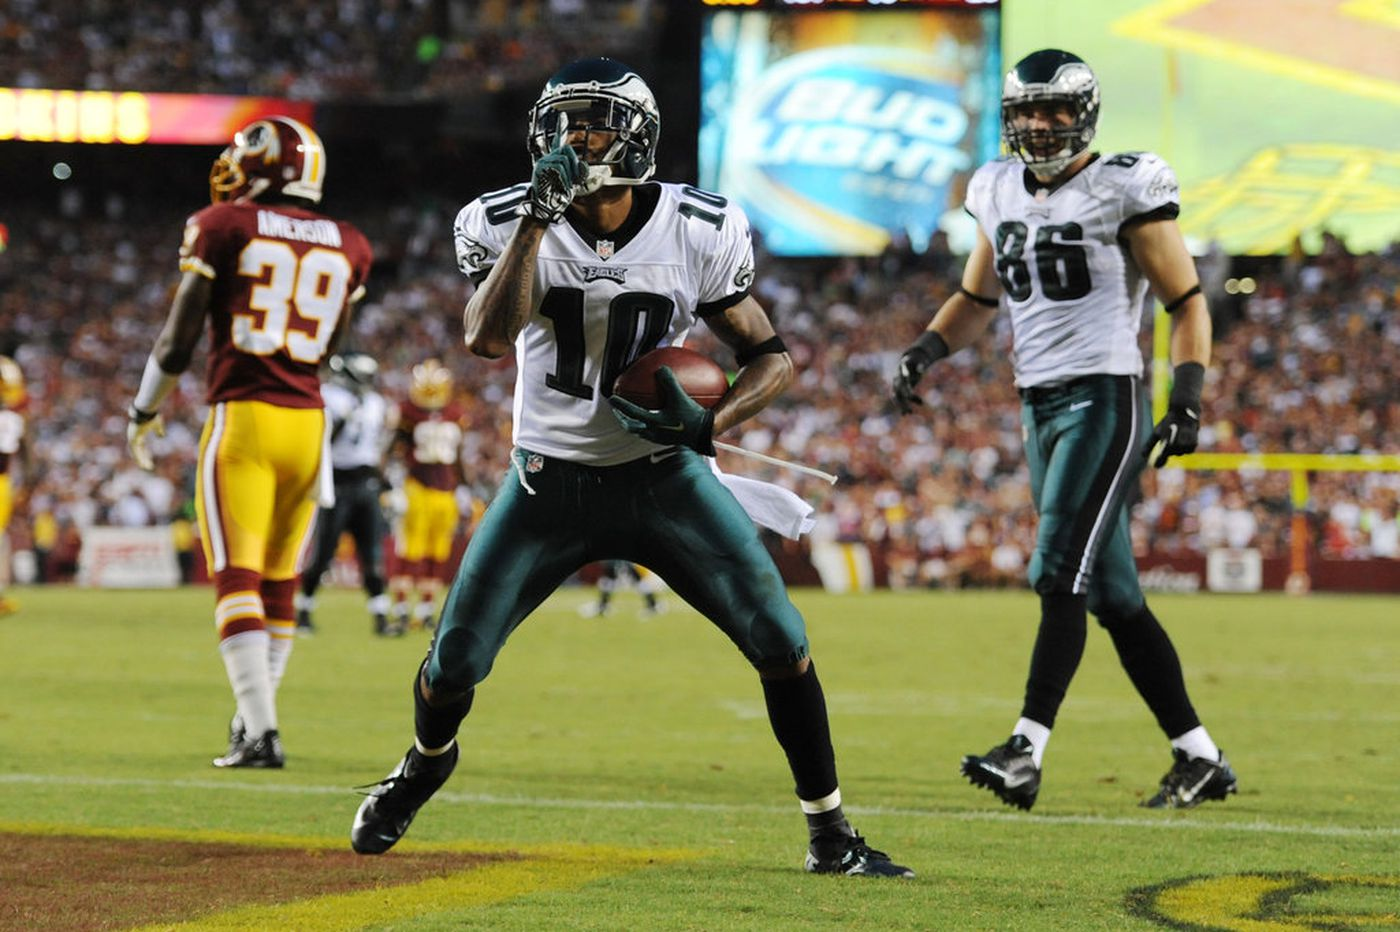 Five years after release, DeSean Jackson returning to Eagles in trade